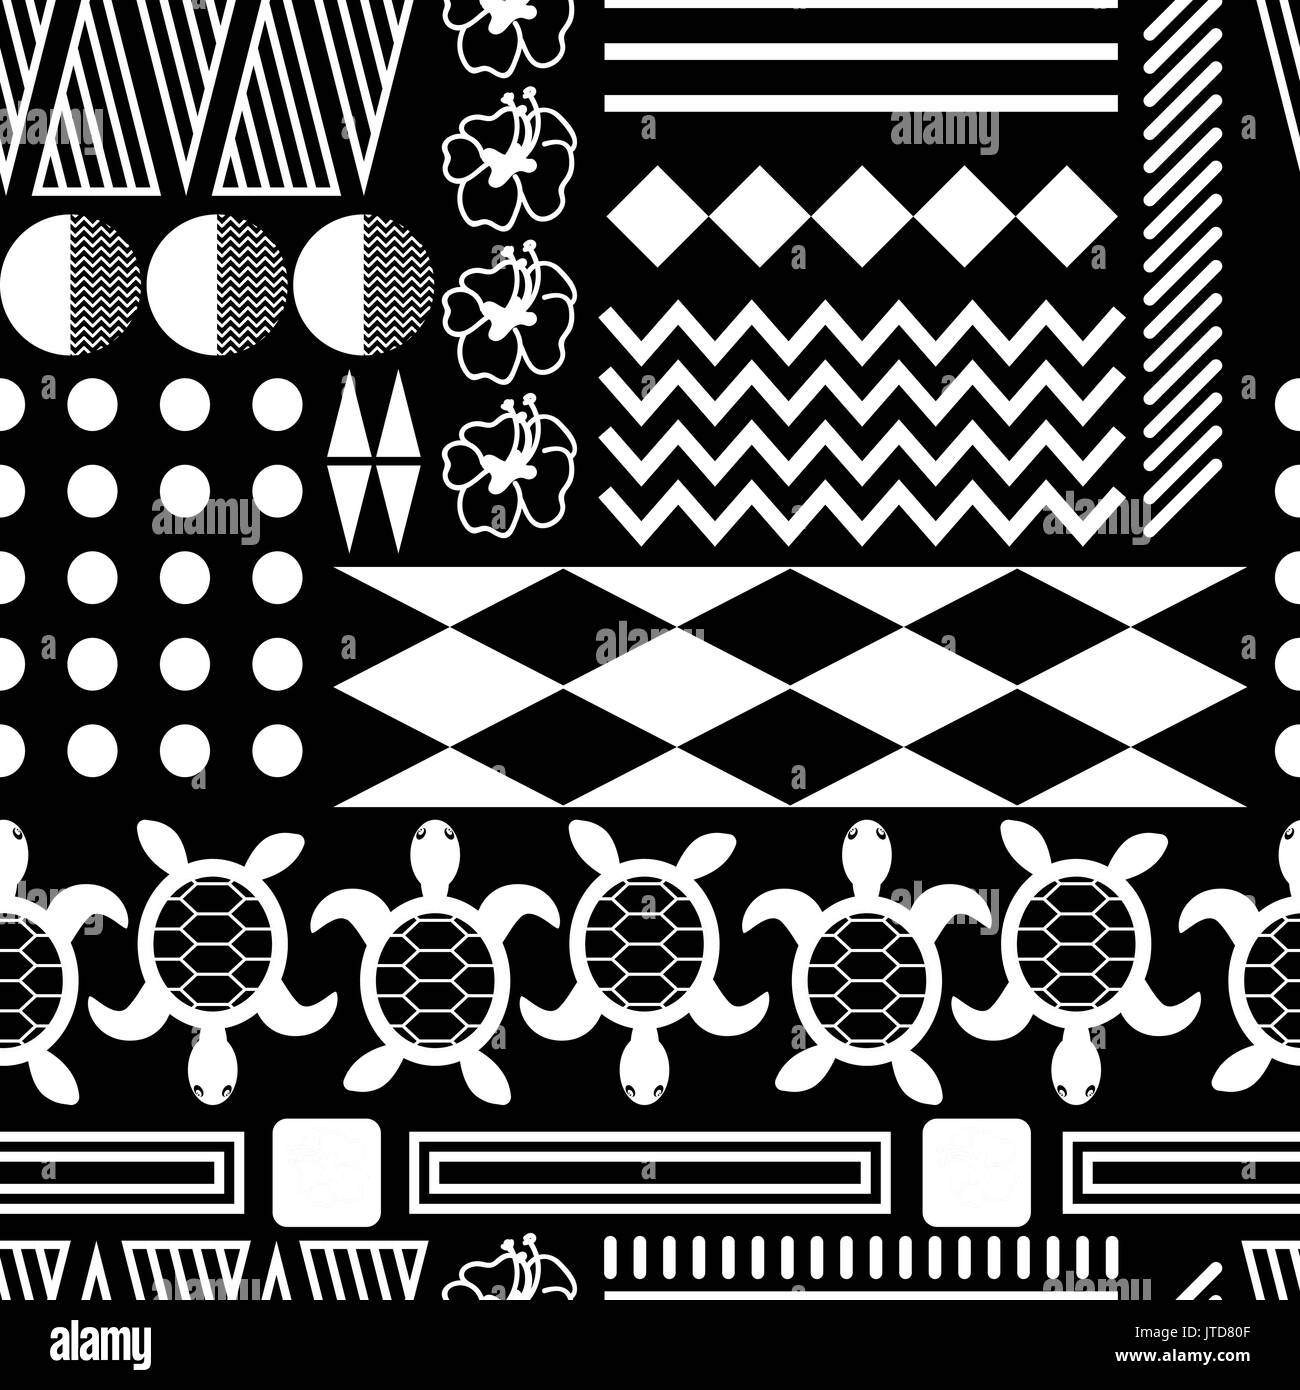 Black and white hawaiian culture ornament seamless vector pattern. Ethnic tileable tribe background with triangles, lines and turtle elements. - Stock Image